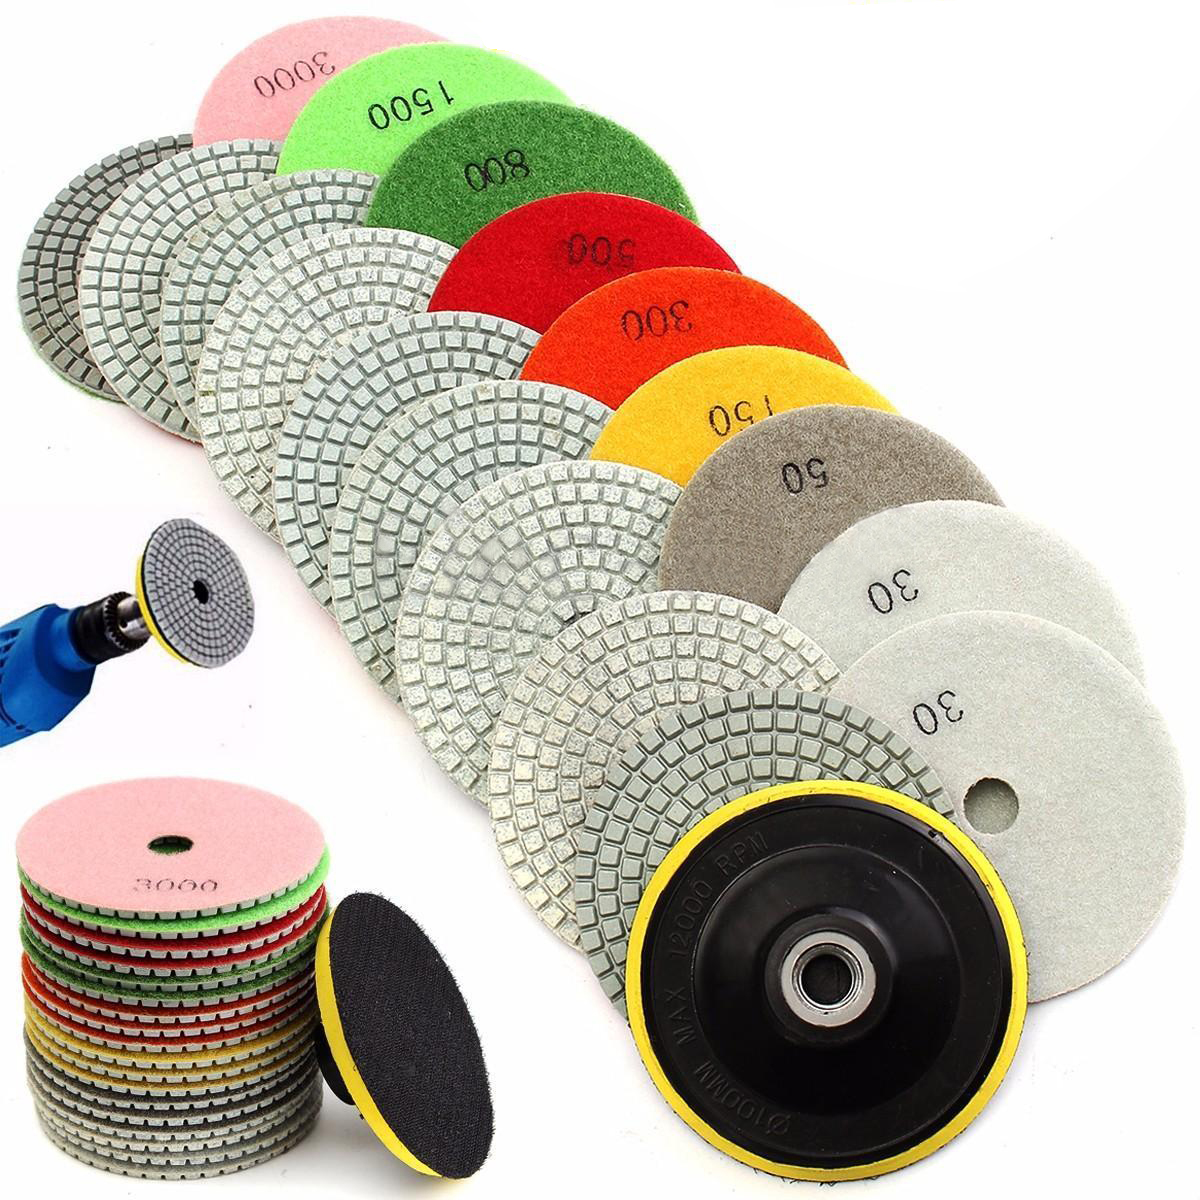 19pcs 4inch Wet/Dry Diamond Polishing Pads For Granite Marble Concrete Stone Polishing Tools цена